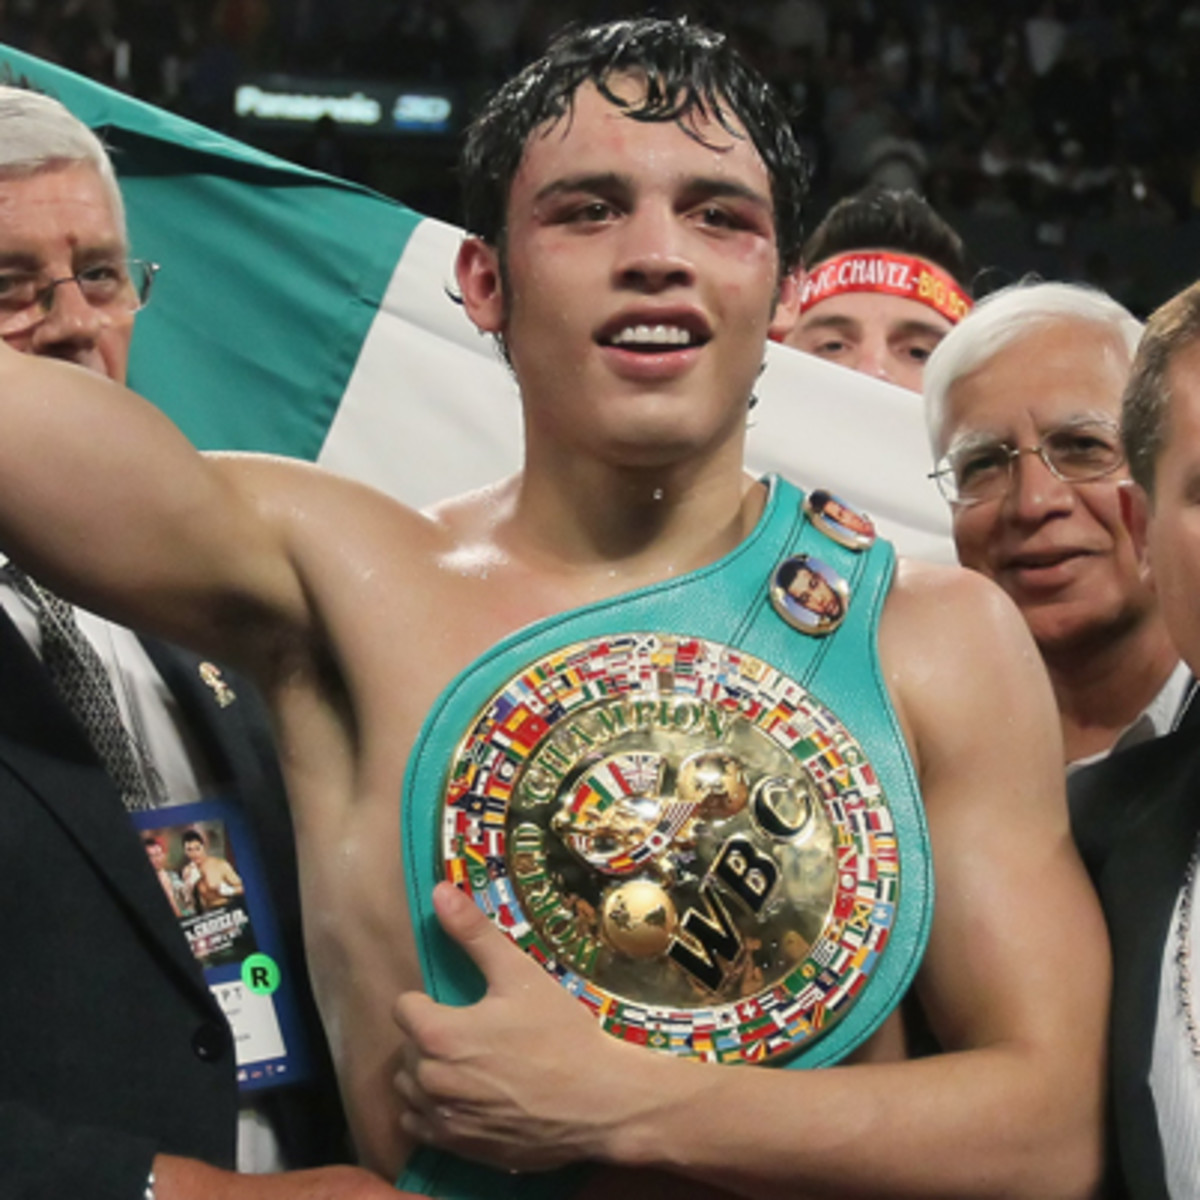 Julio cesar chavez jr sucks